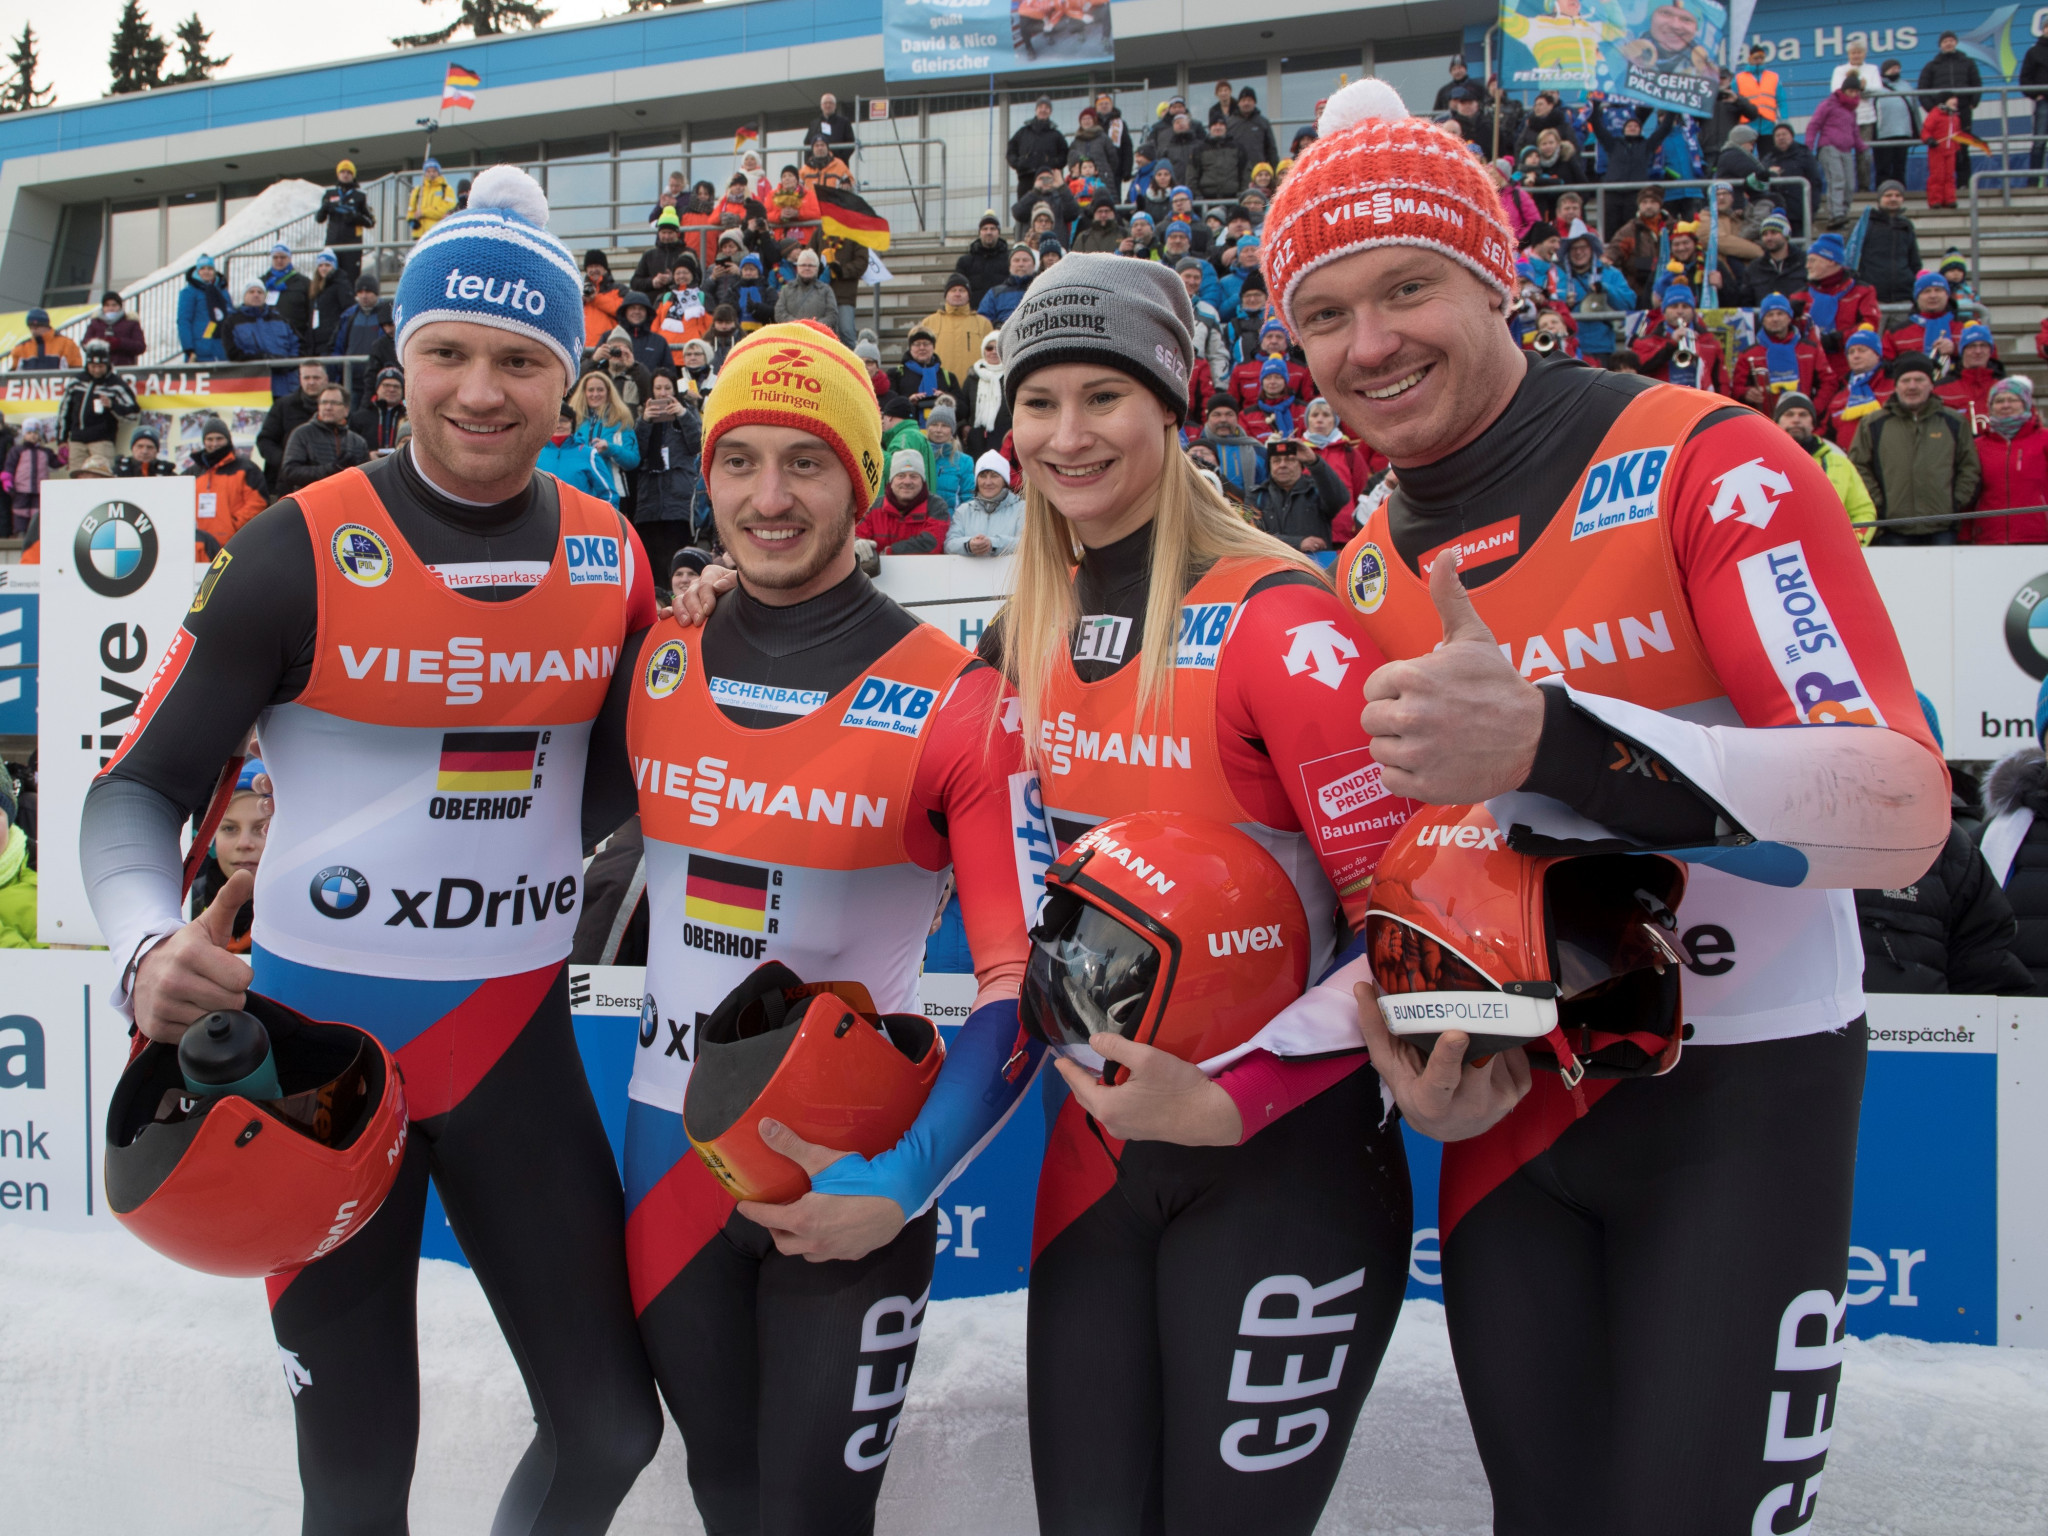 Germany won the team relay in a track record time ©FIL